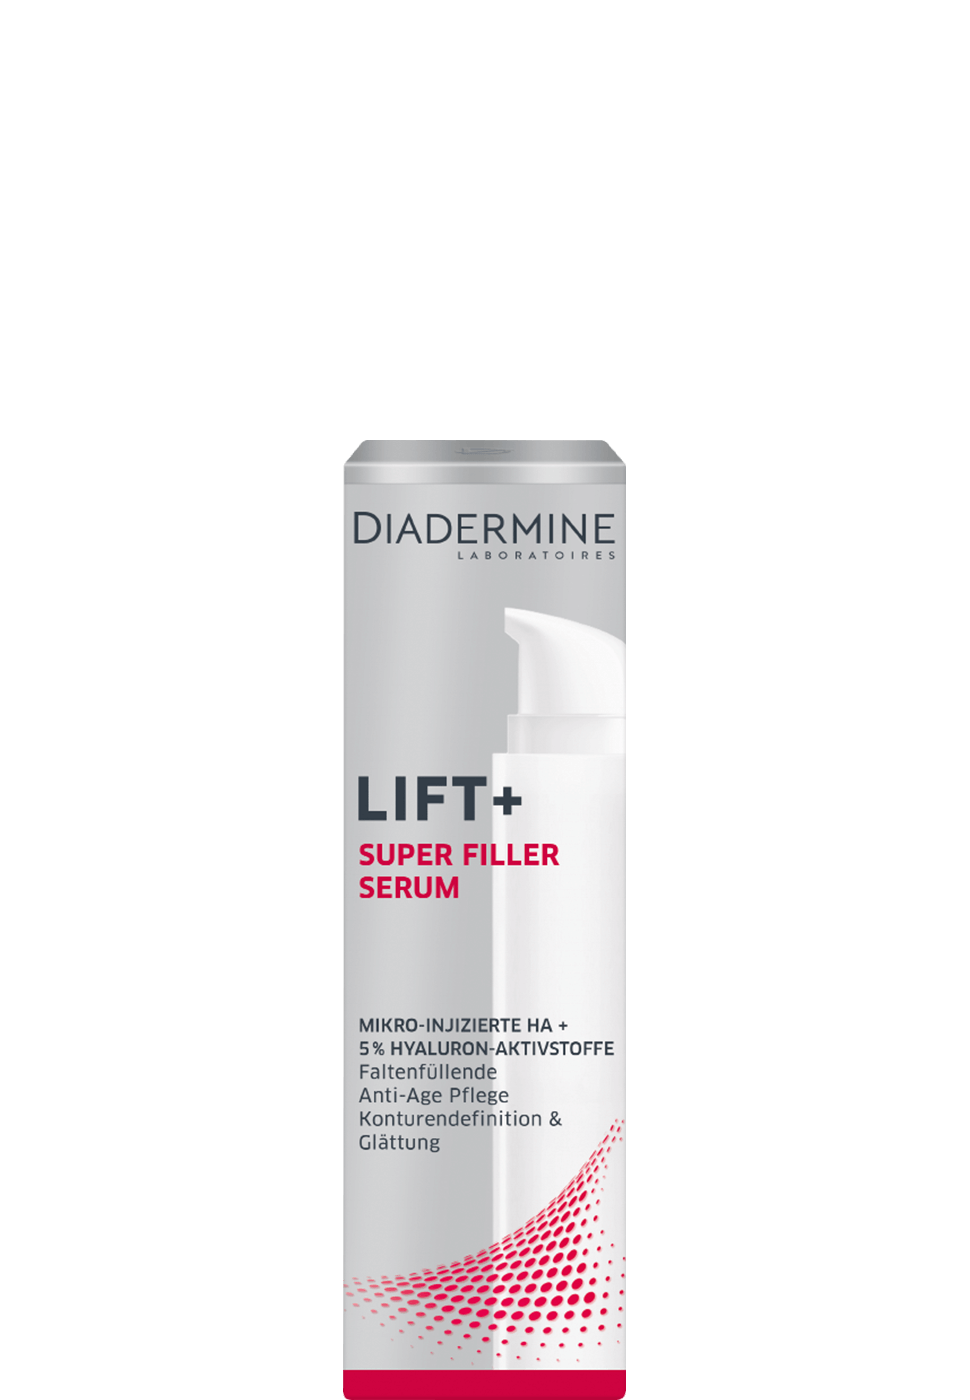 diaatrmine_at_lift_plus_super_filler_super_serum_970x1400